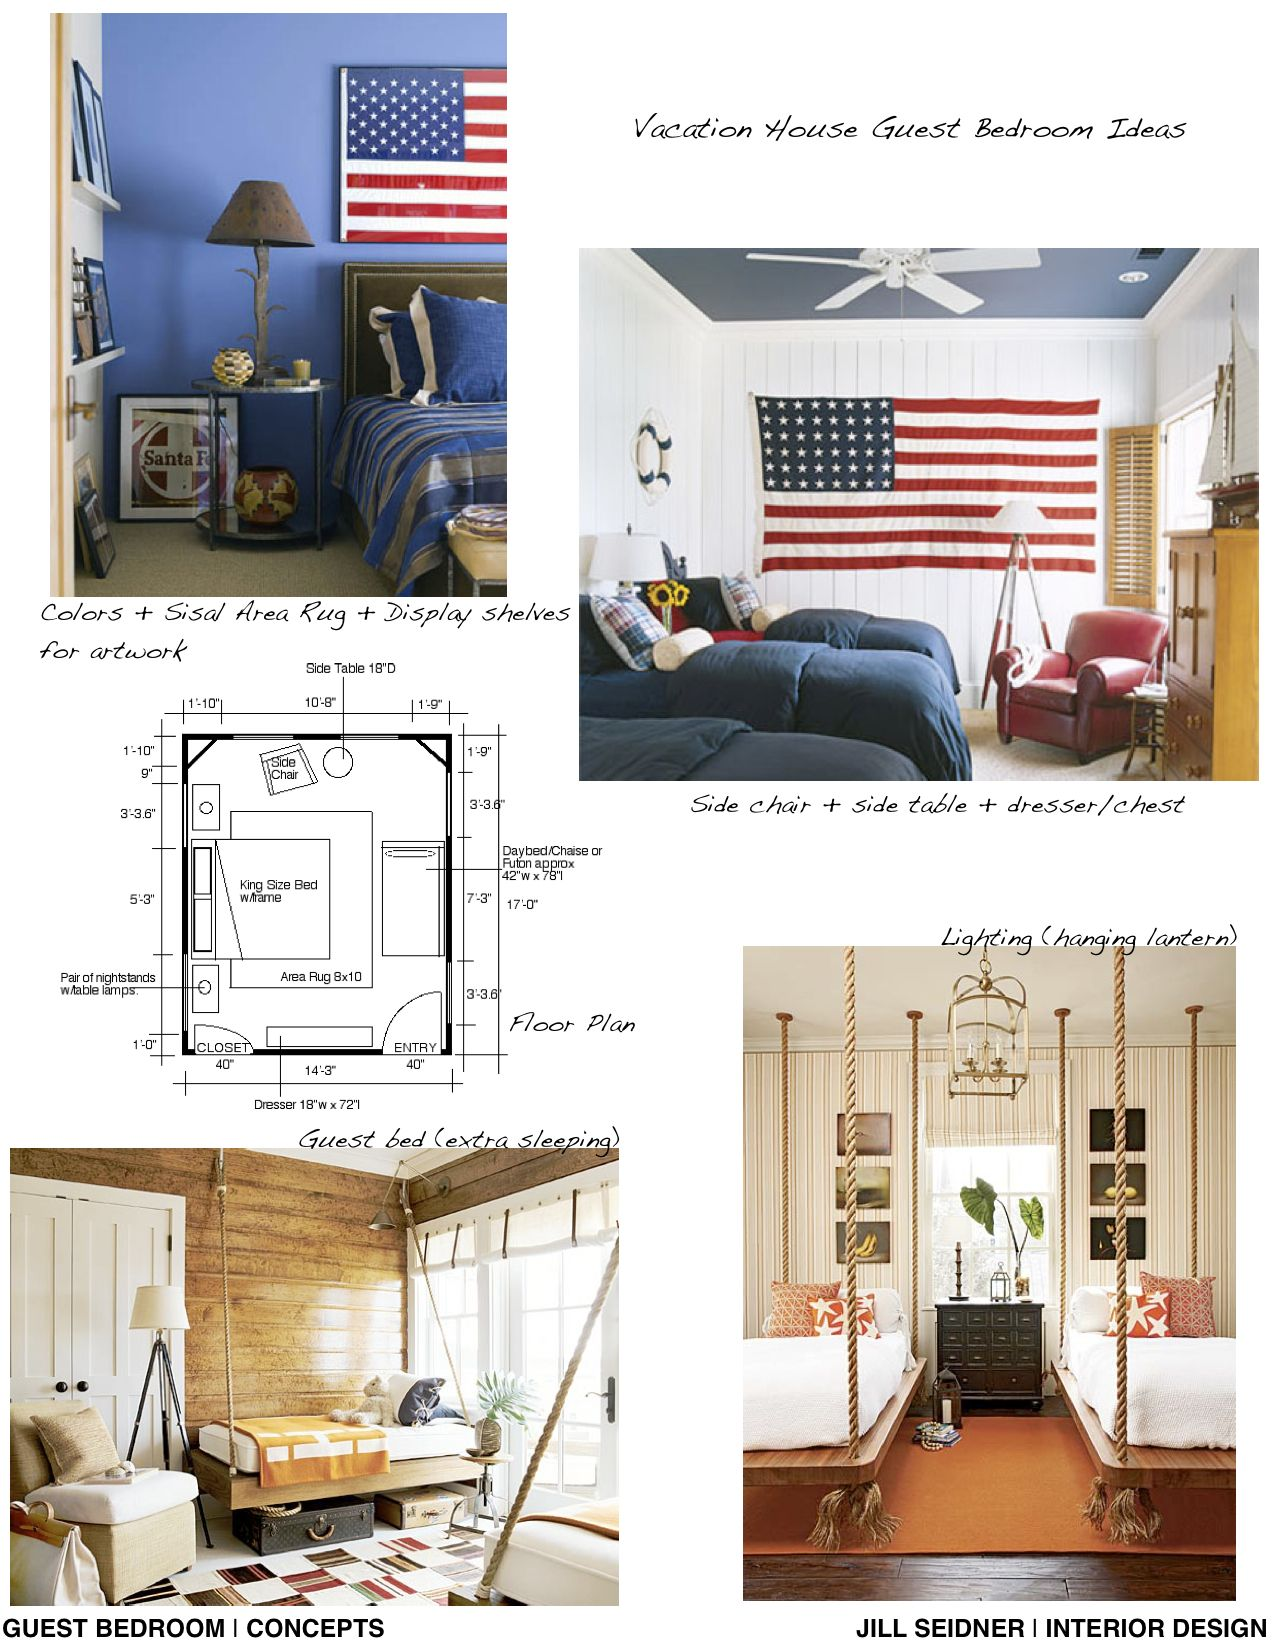 Concept Board And Furniture Layout For An Online Design Project Vacation House On Martha S Vineyard Interior Design Help Interior Design Room Design